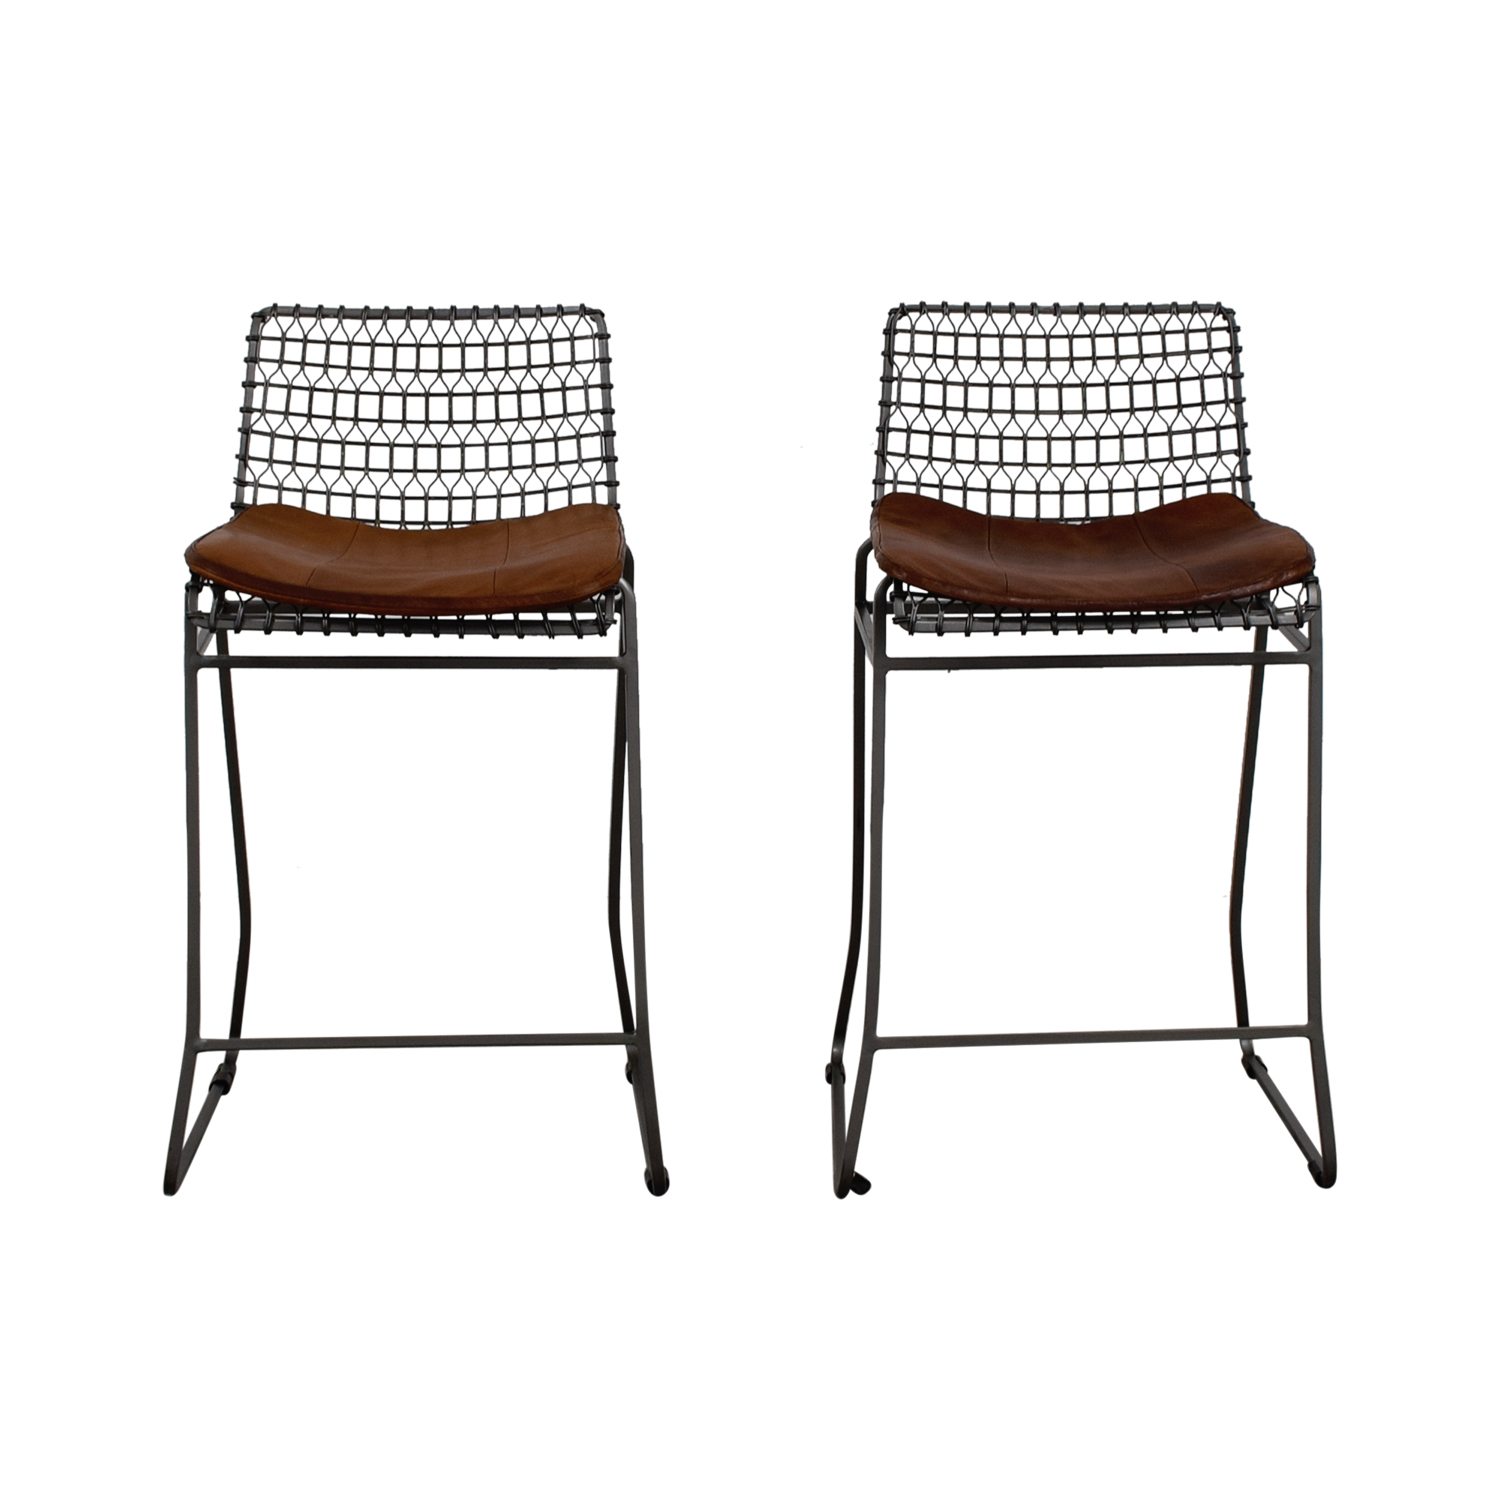 Terrific 79 Off Crate Barrel Crate And Barrel Metal Bar Stools With Sunbrella Cushions Chairs Ncnpc Chair Design For Home Ncnpcorg